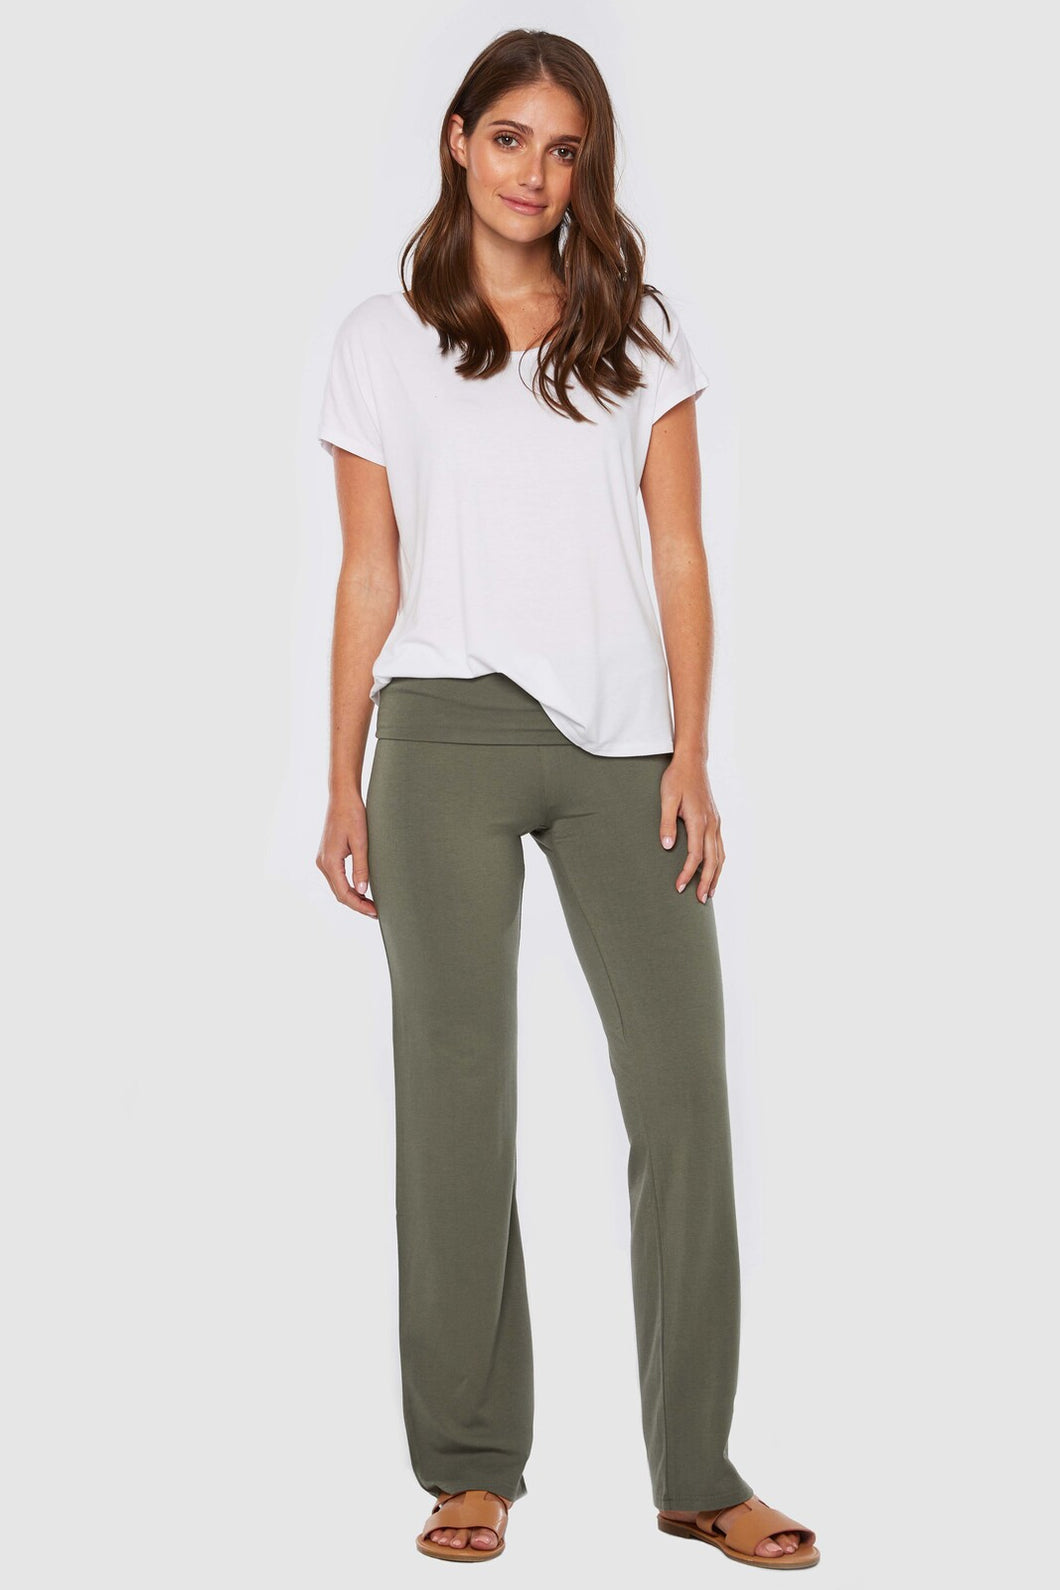 Essential Bamboo Pants - Bamboo Body - Papaya Lane